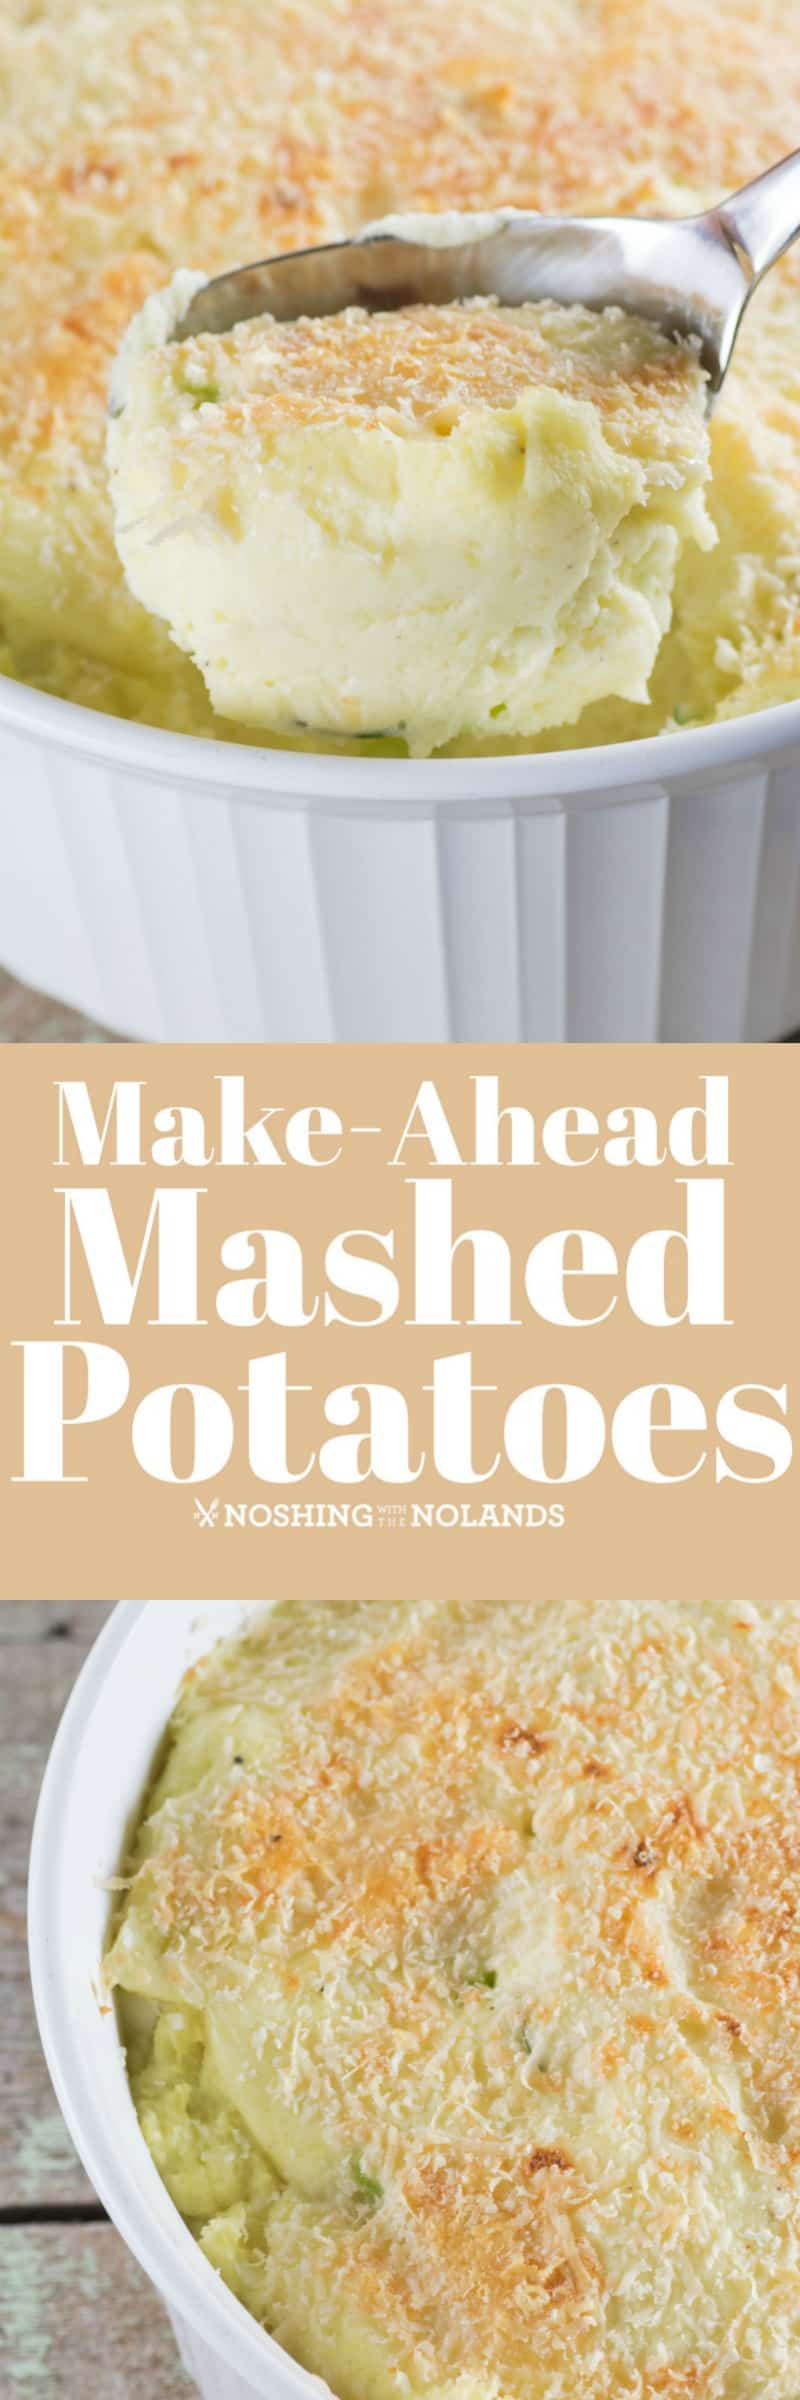 Make-Ahead Mashed Potatoes Recipe is the perfect side dish for the holidays!! #potatoes #makeahead #holidays #sidedish